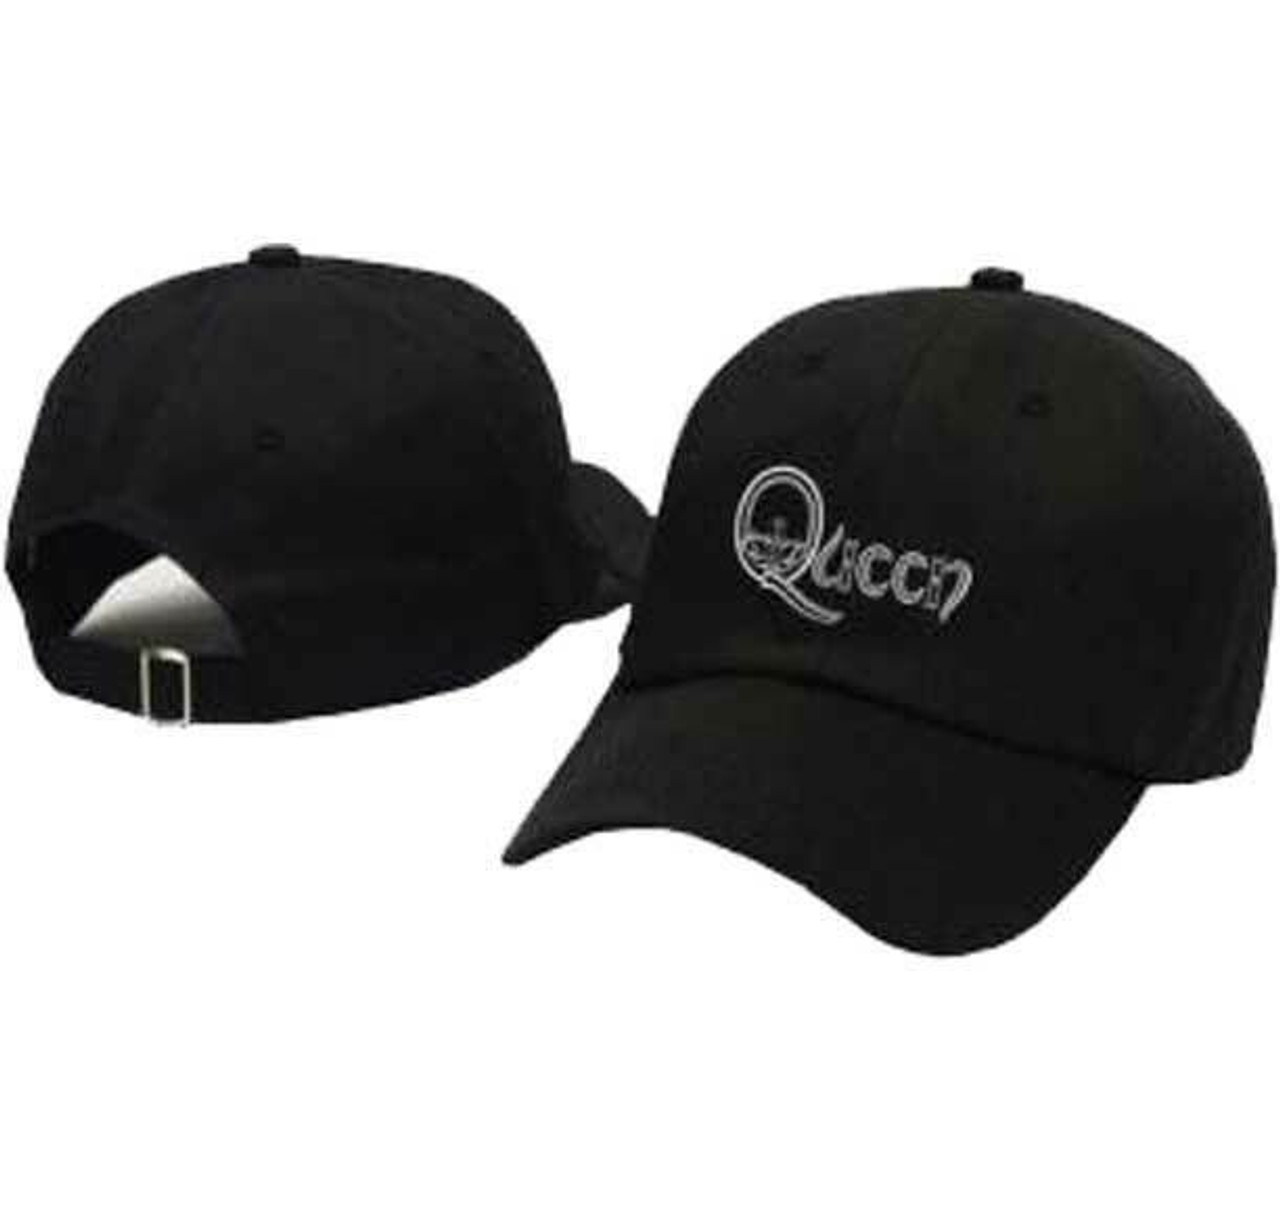 09028fc774b2c Queen Crown Logo Classic Rock n Roll Band Music Baseball Dad Hat Cap  3277101H00 - Fearless Apparel